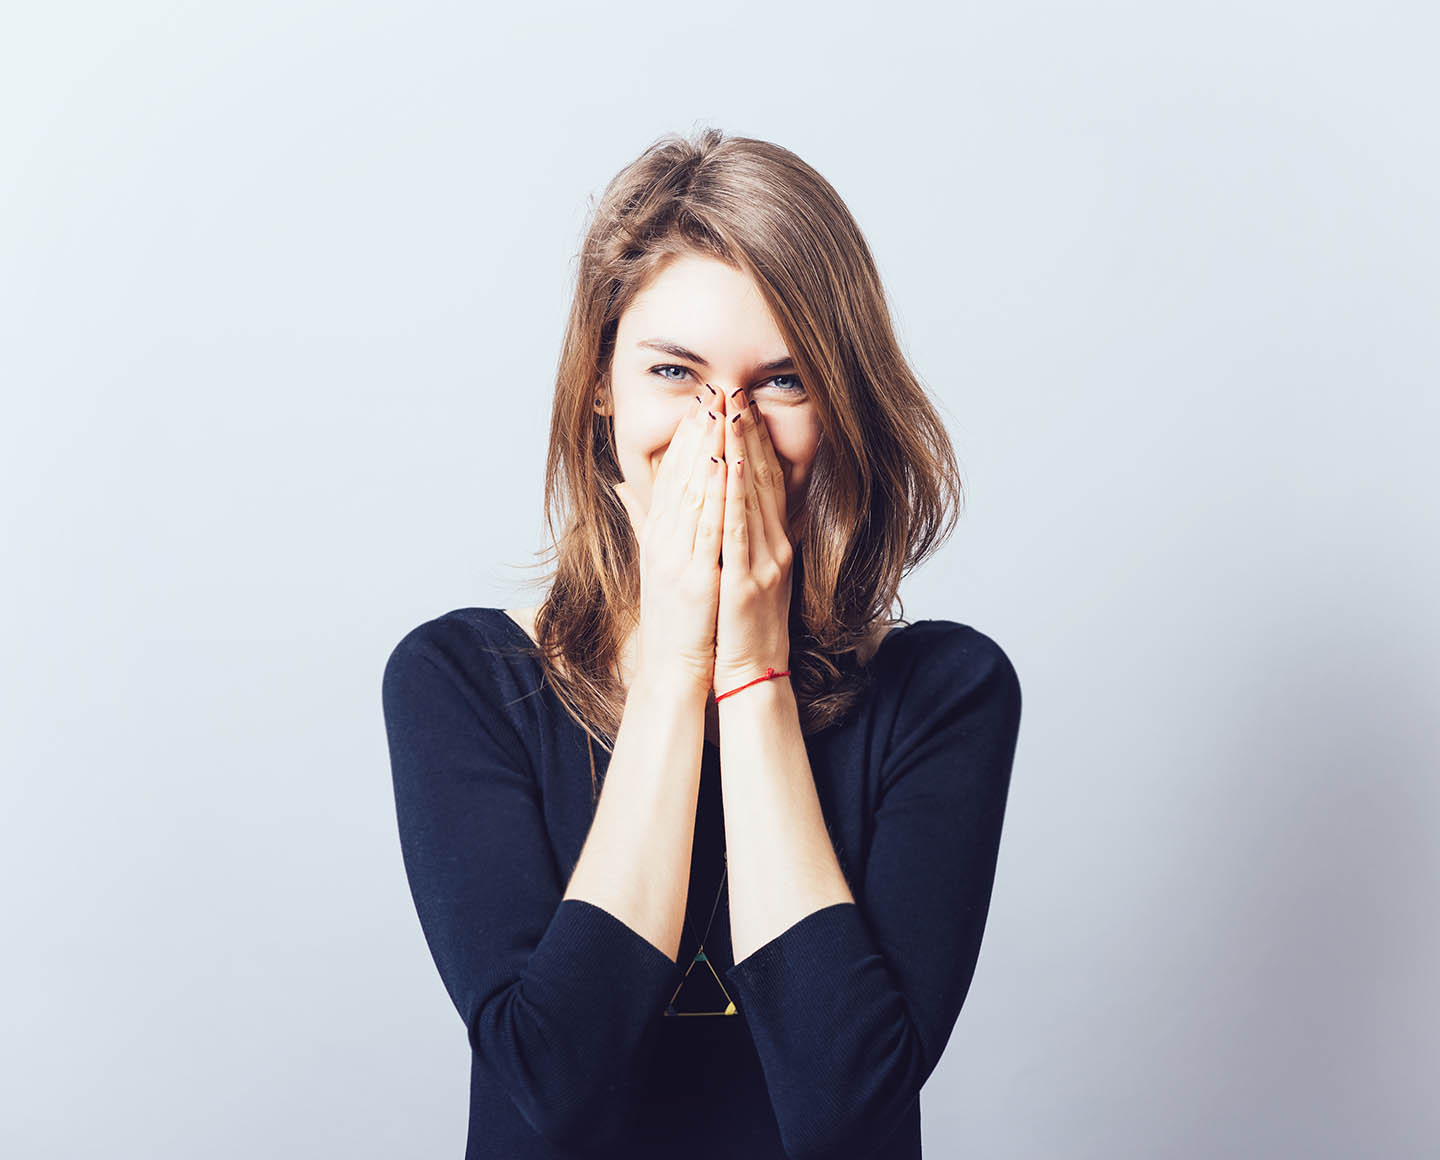 woman covering mouth smiling